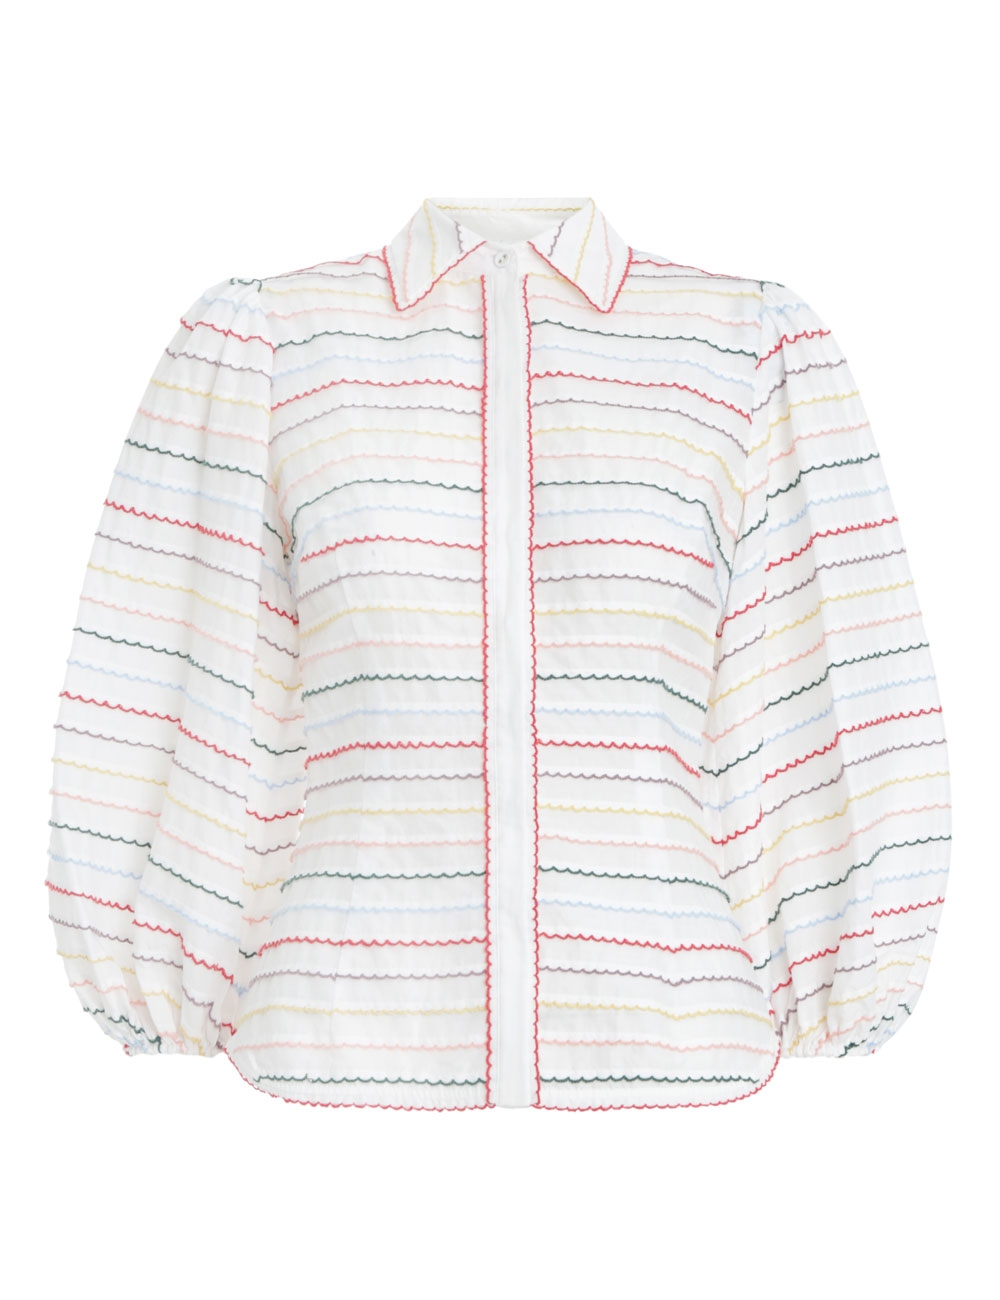 Zinnia Scallop Stripe Shirt